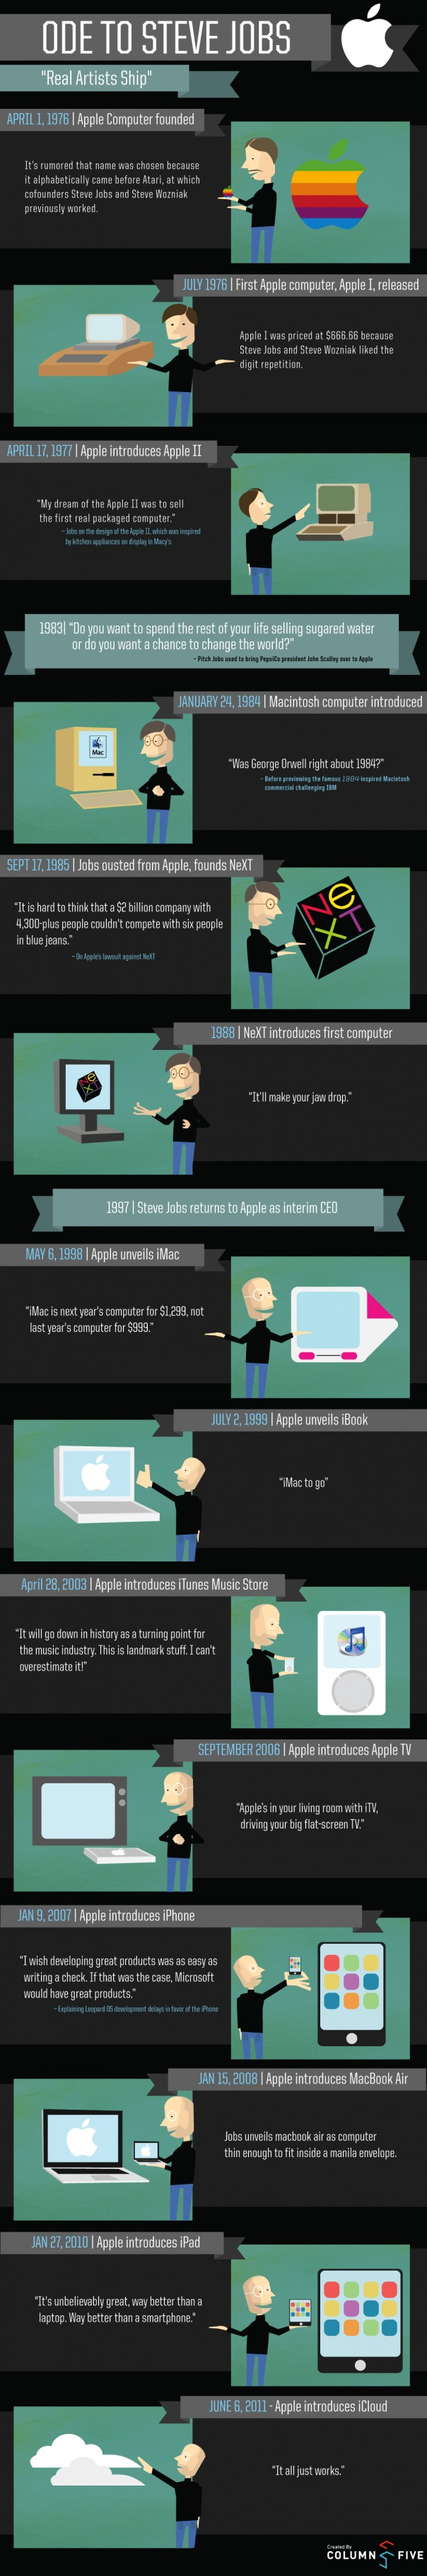 An Ode To Steve Jobs [INFOGRAPHIC]